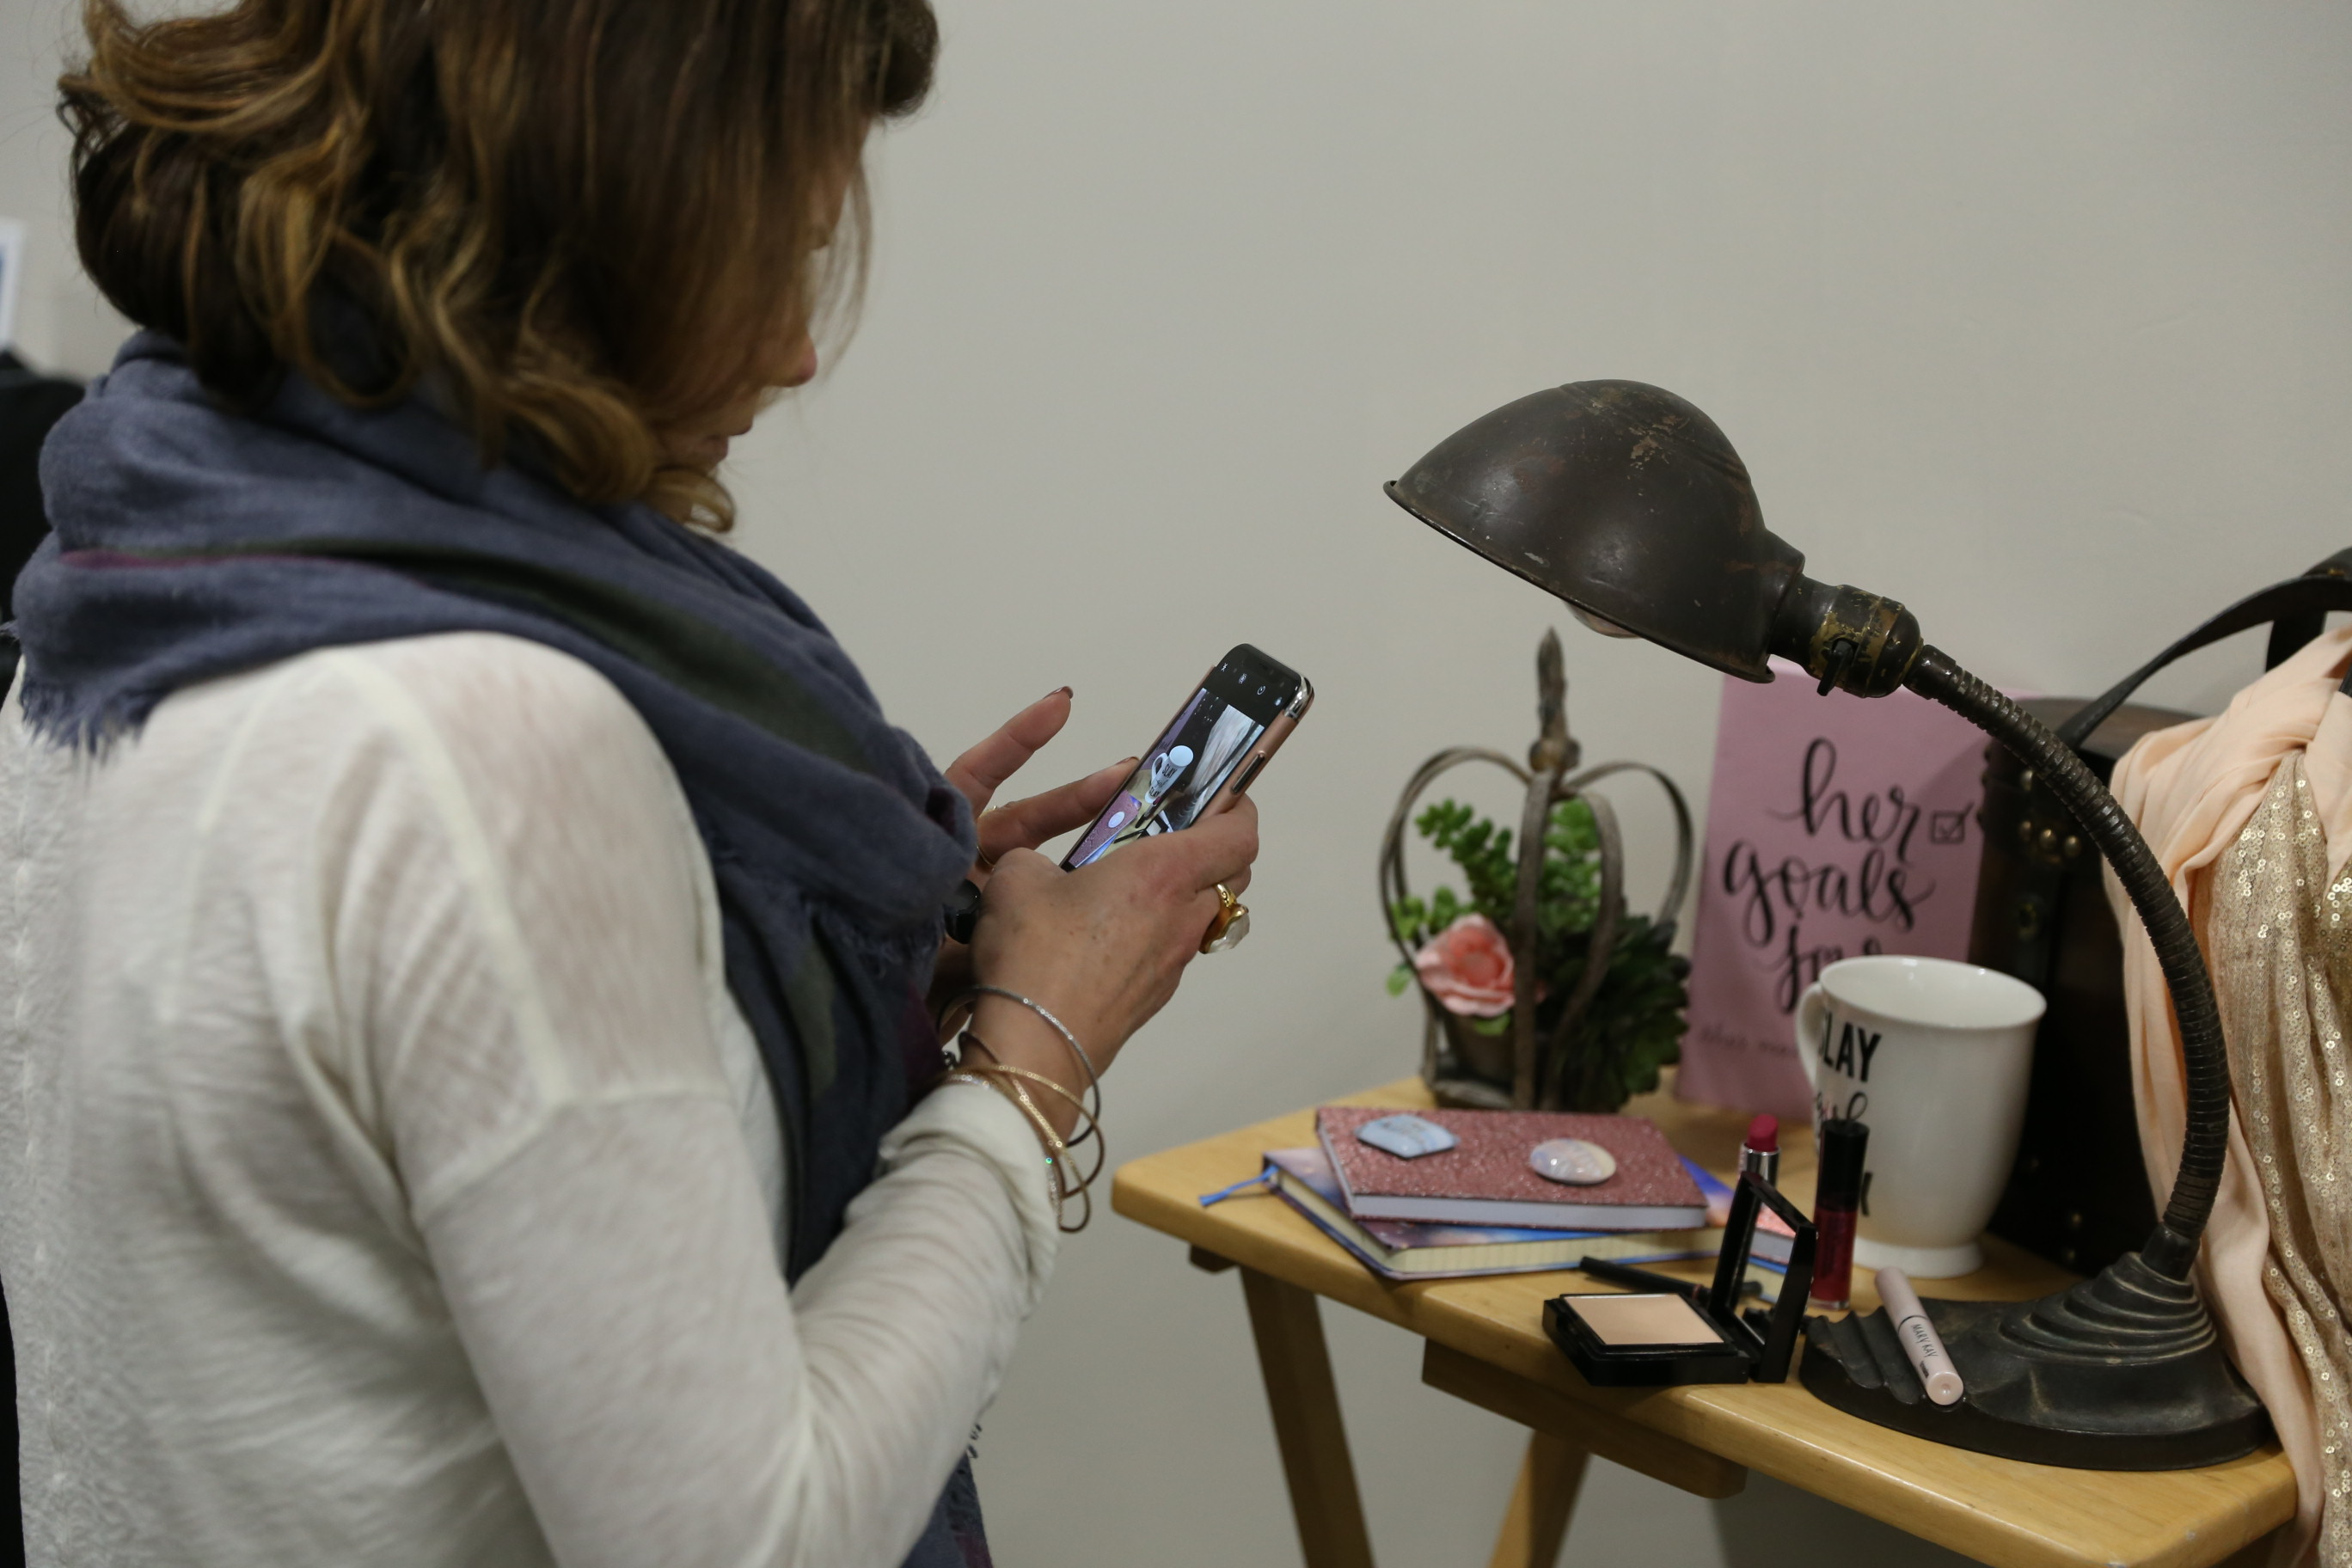 Participants crafting and photographing vignettes for Instagram Photos